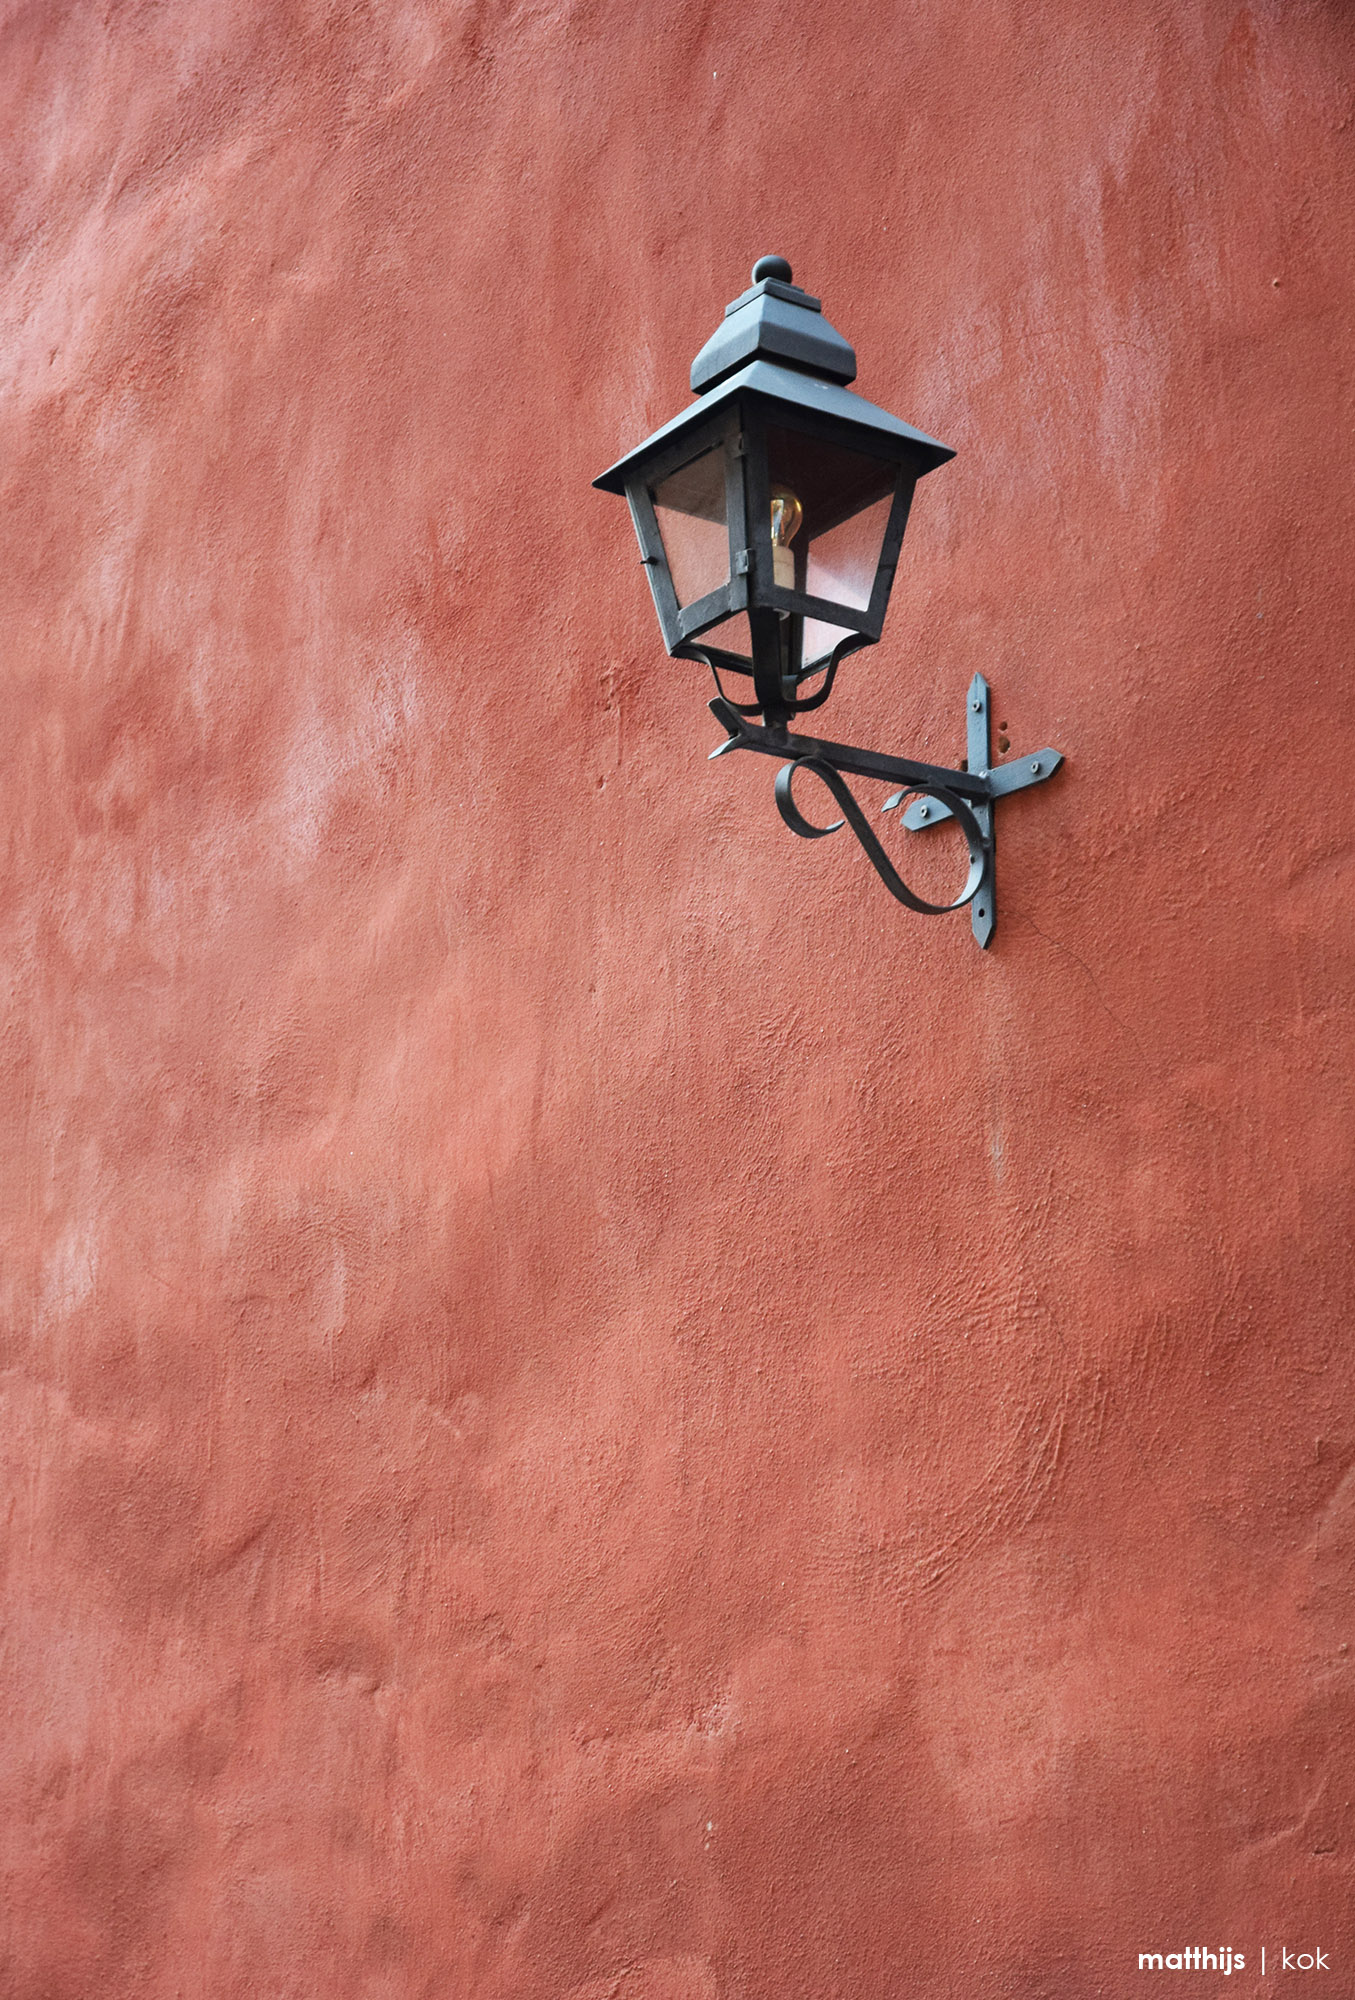 Old lantern on building wall in old town, Gamla Stan, Stockholm, Sweden | Photo by Matthijs Kok